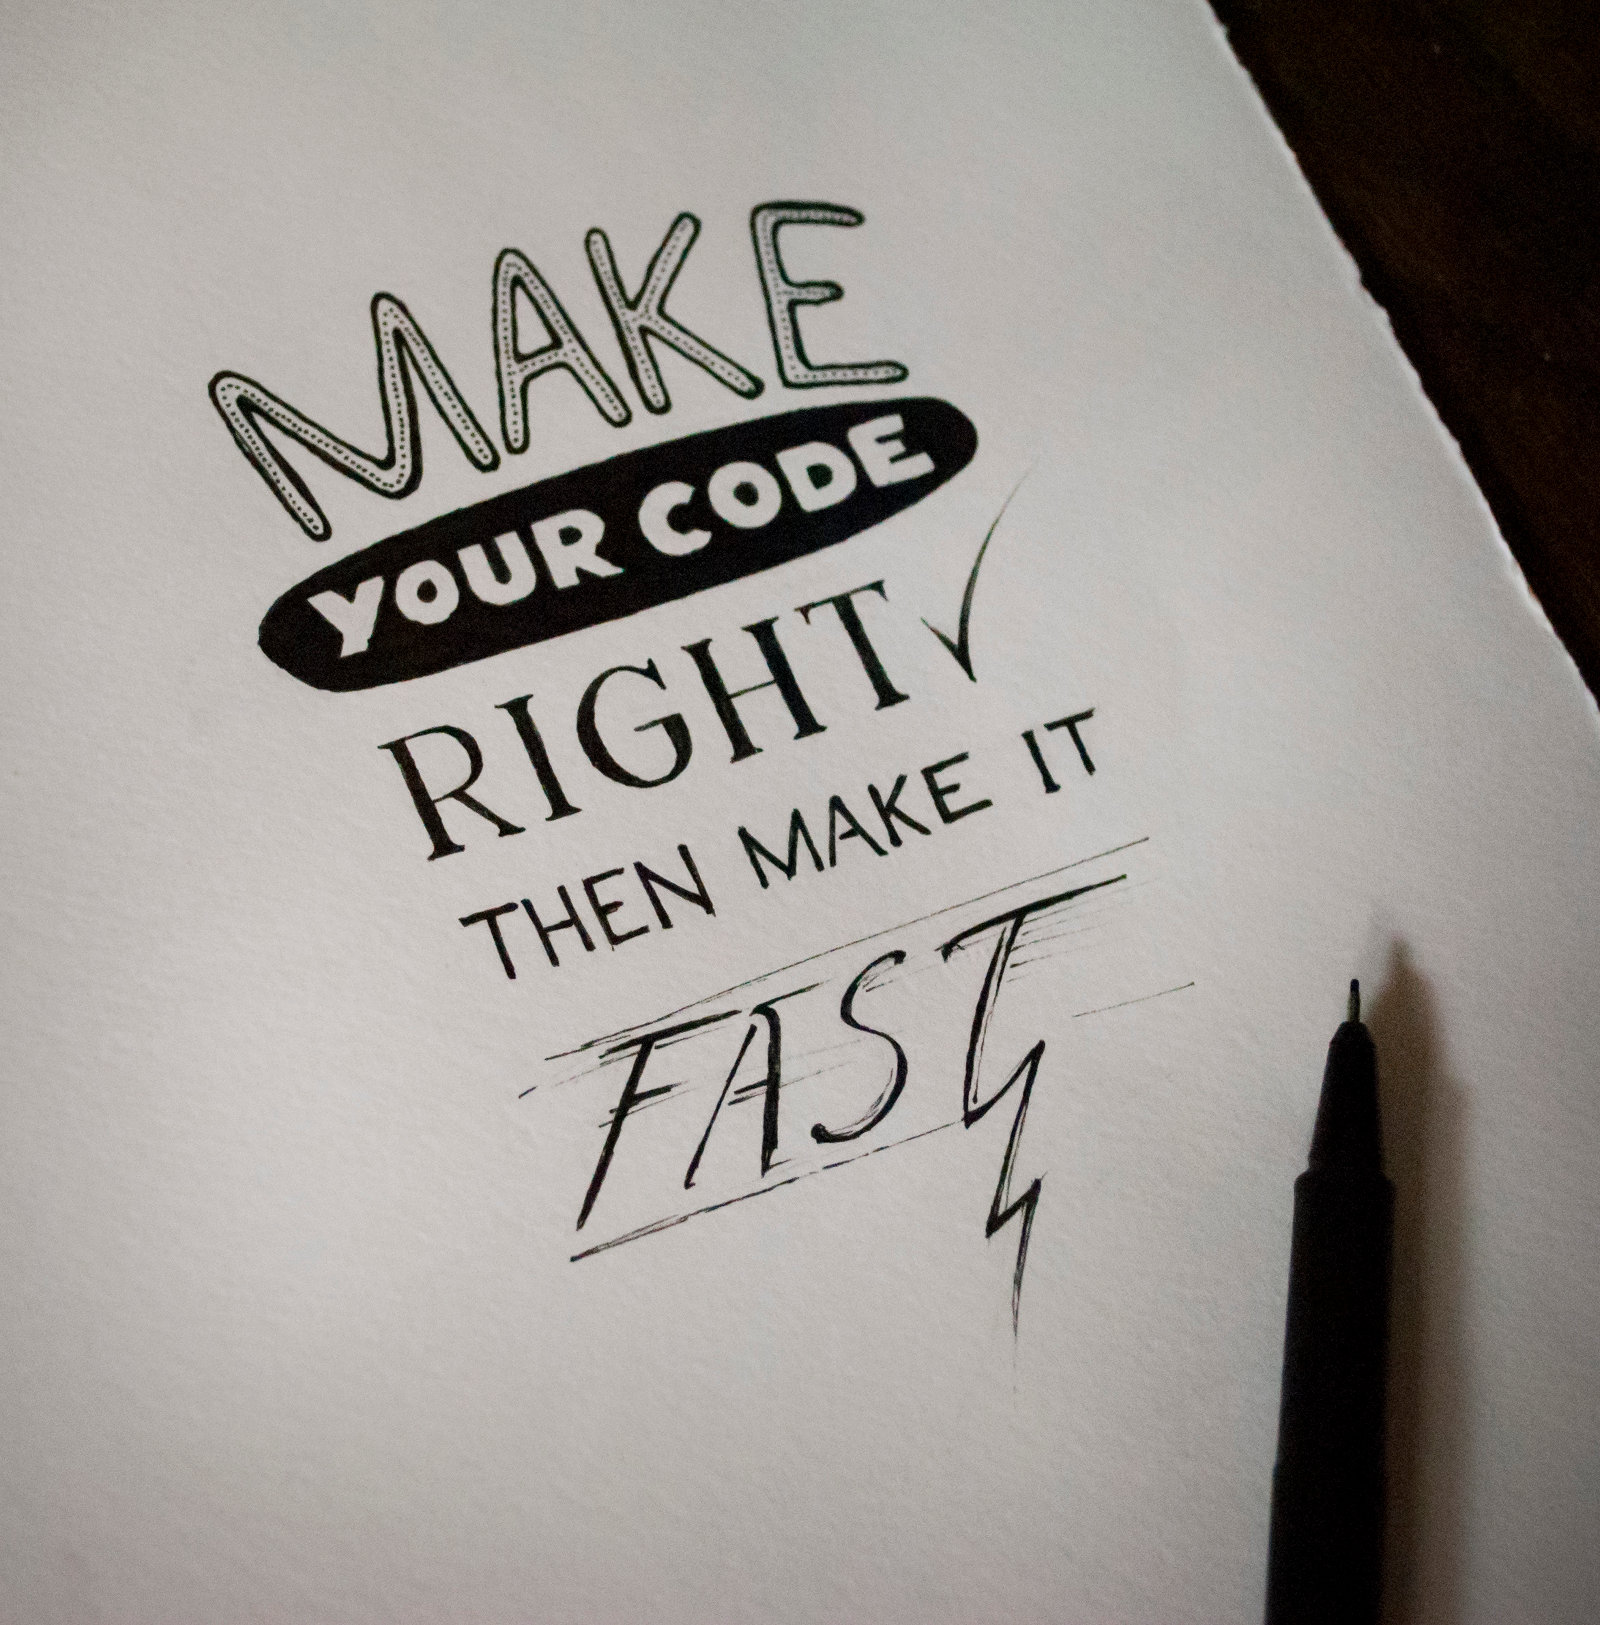 Make your code right, then make it fast